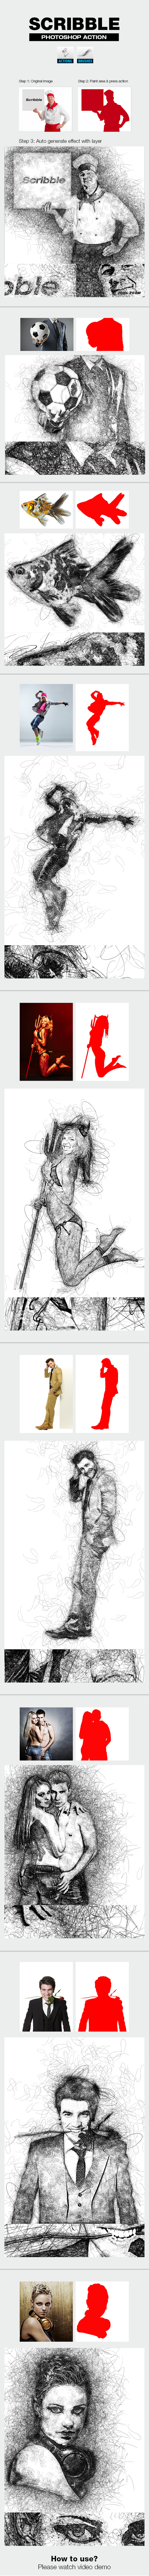 Scribble - Photo Effects Actions